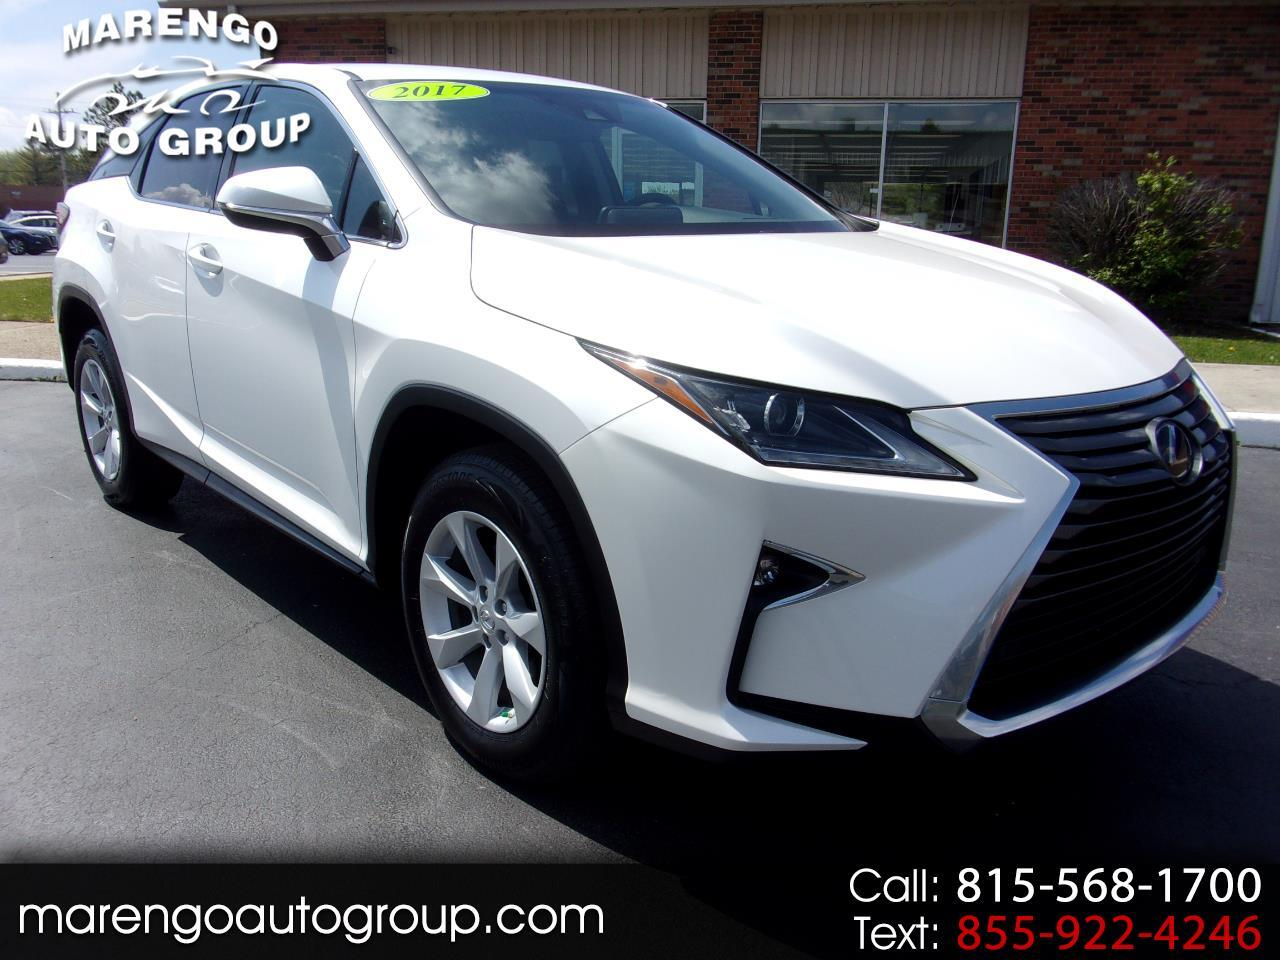 used 2017 Lexus RX car, priced at $31,996